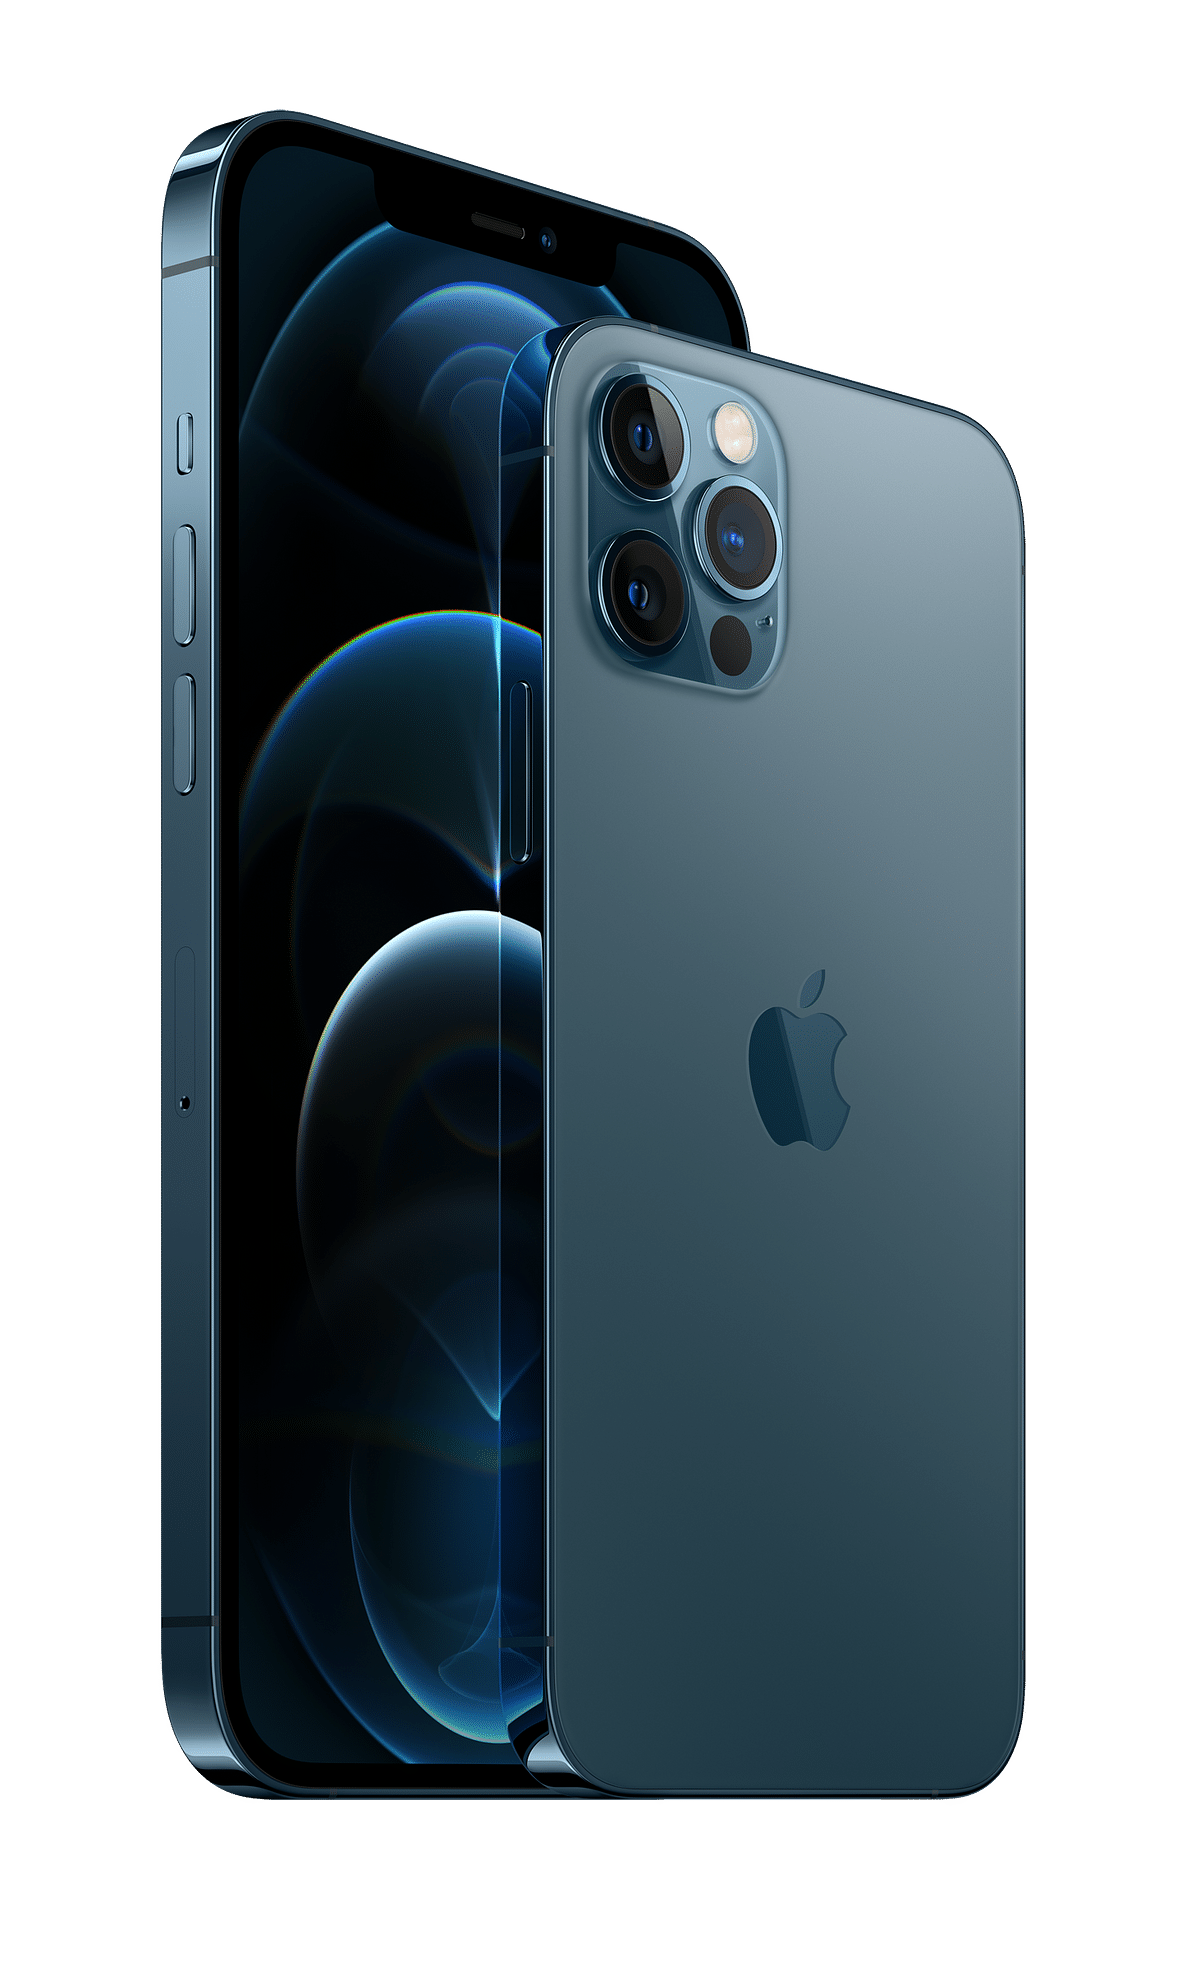 iPhone 12 Pro Max is now Apple's biggest phone ever